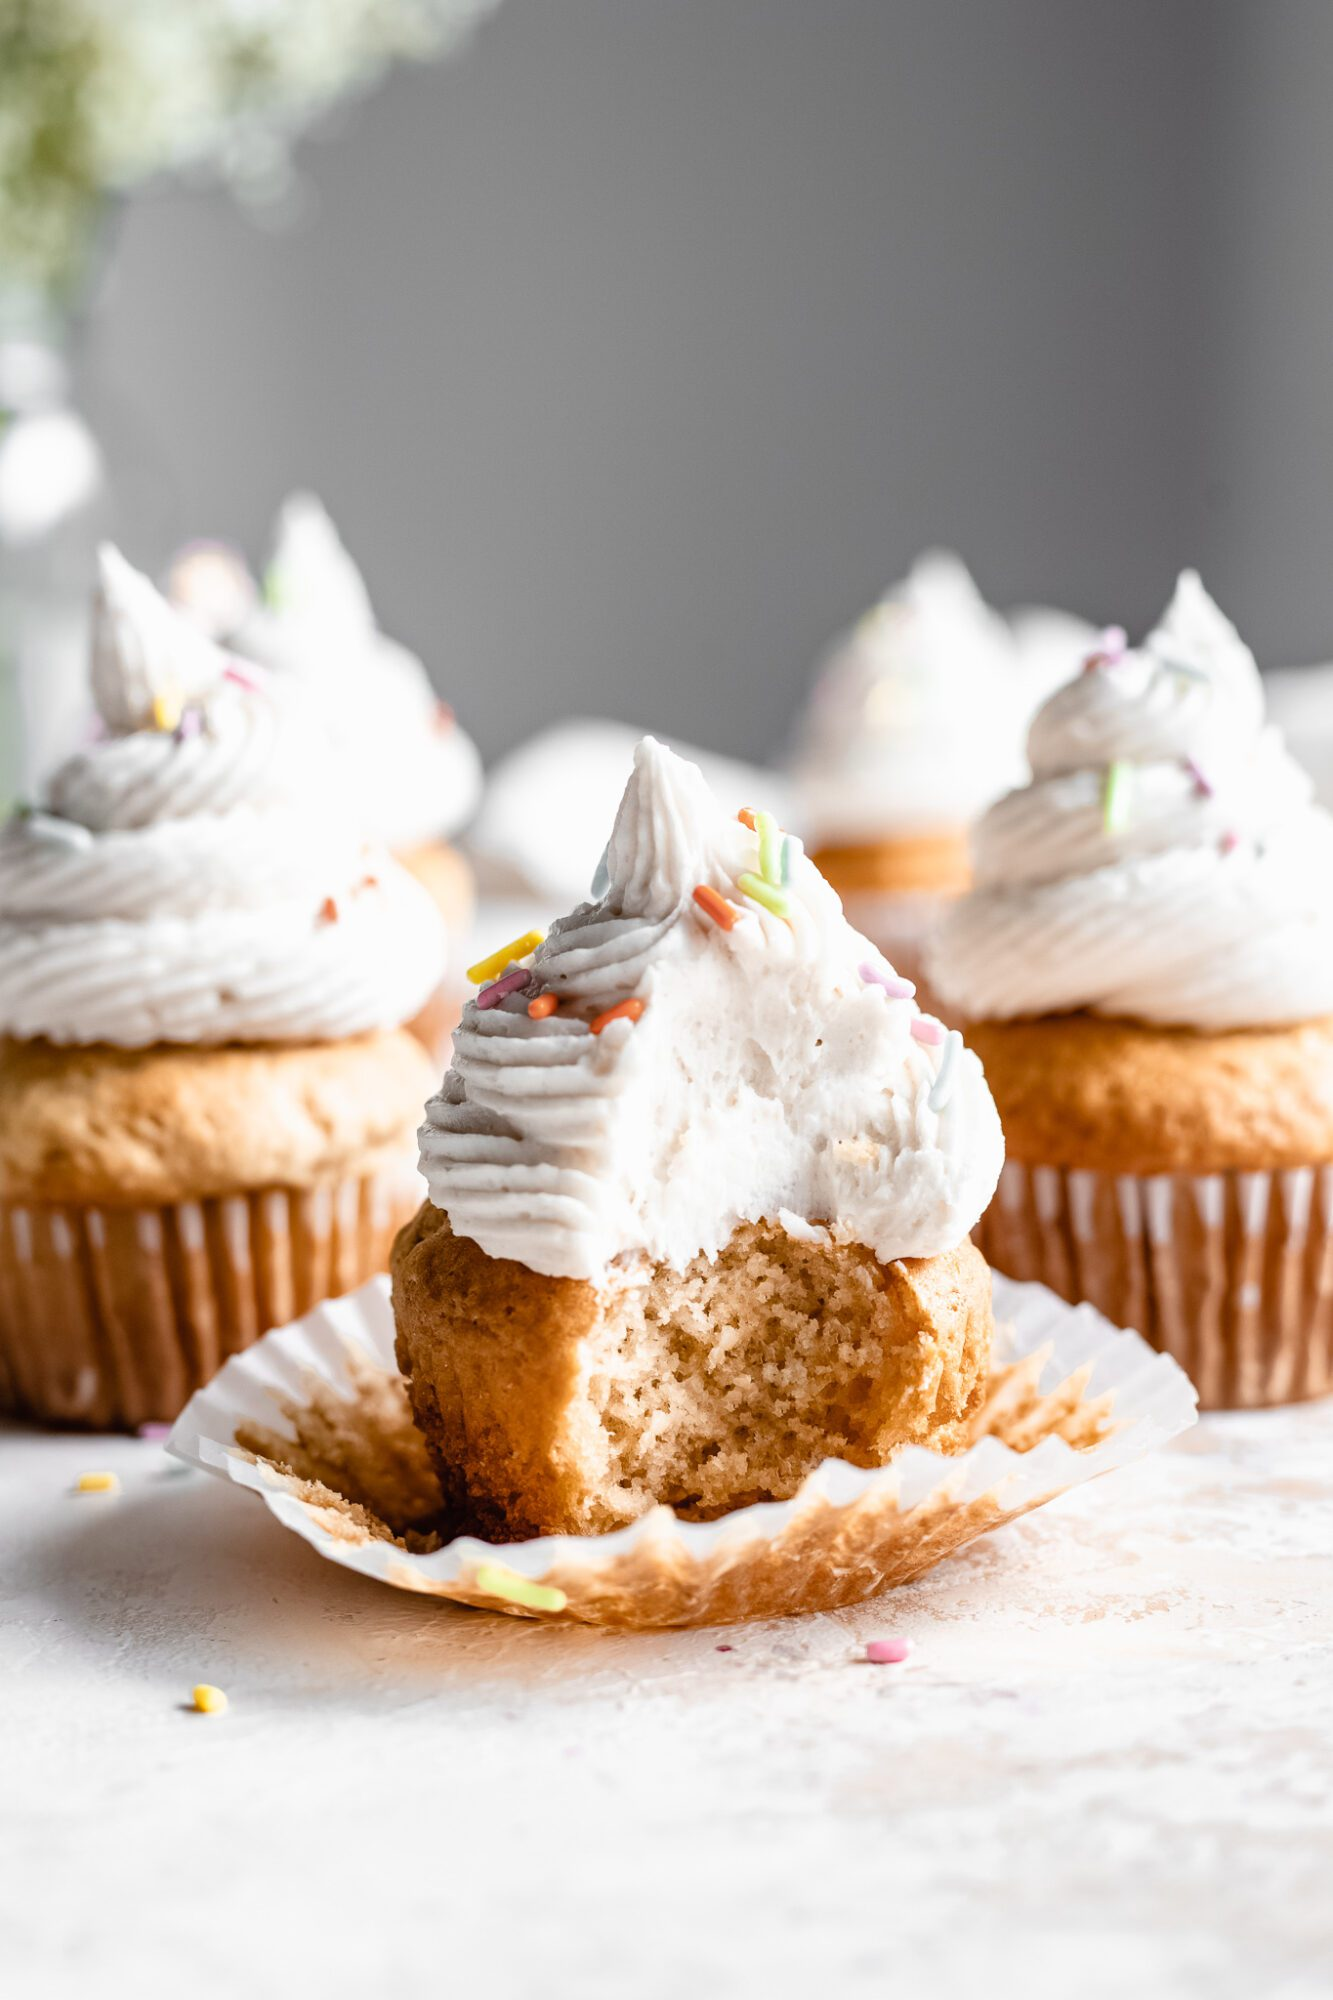 bitten veagn cupcake with vegan frosting and sprinkles